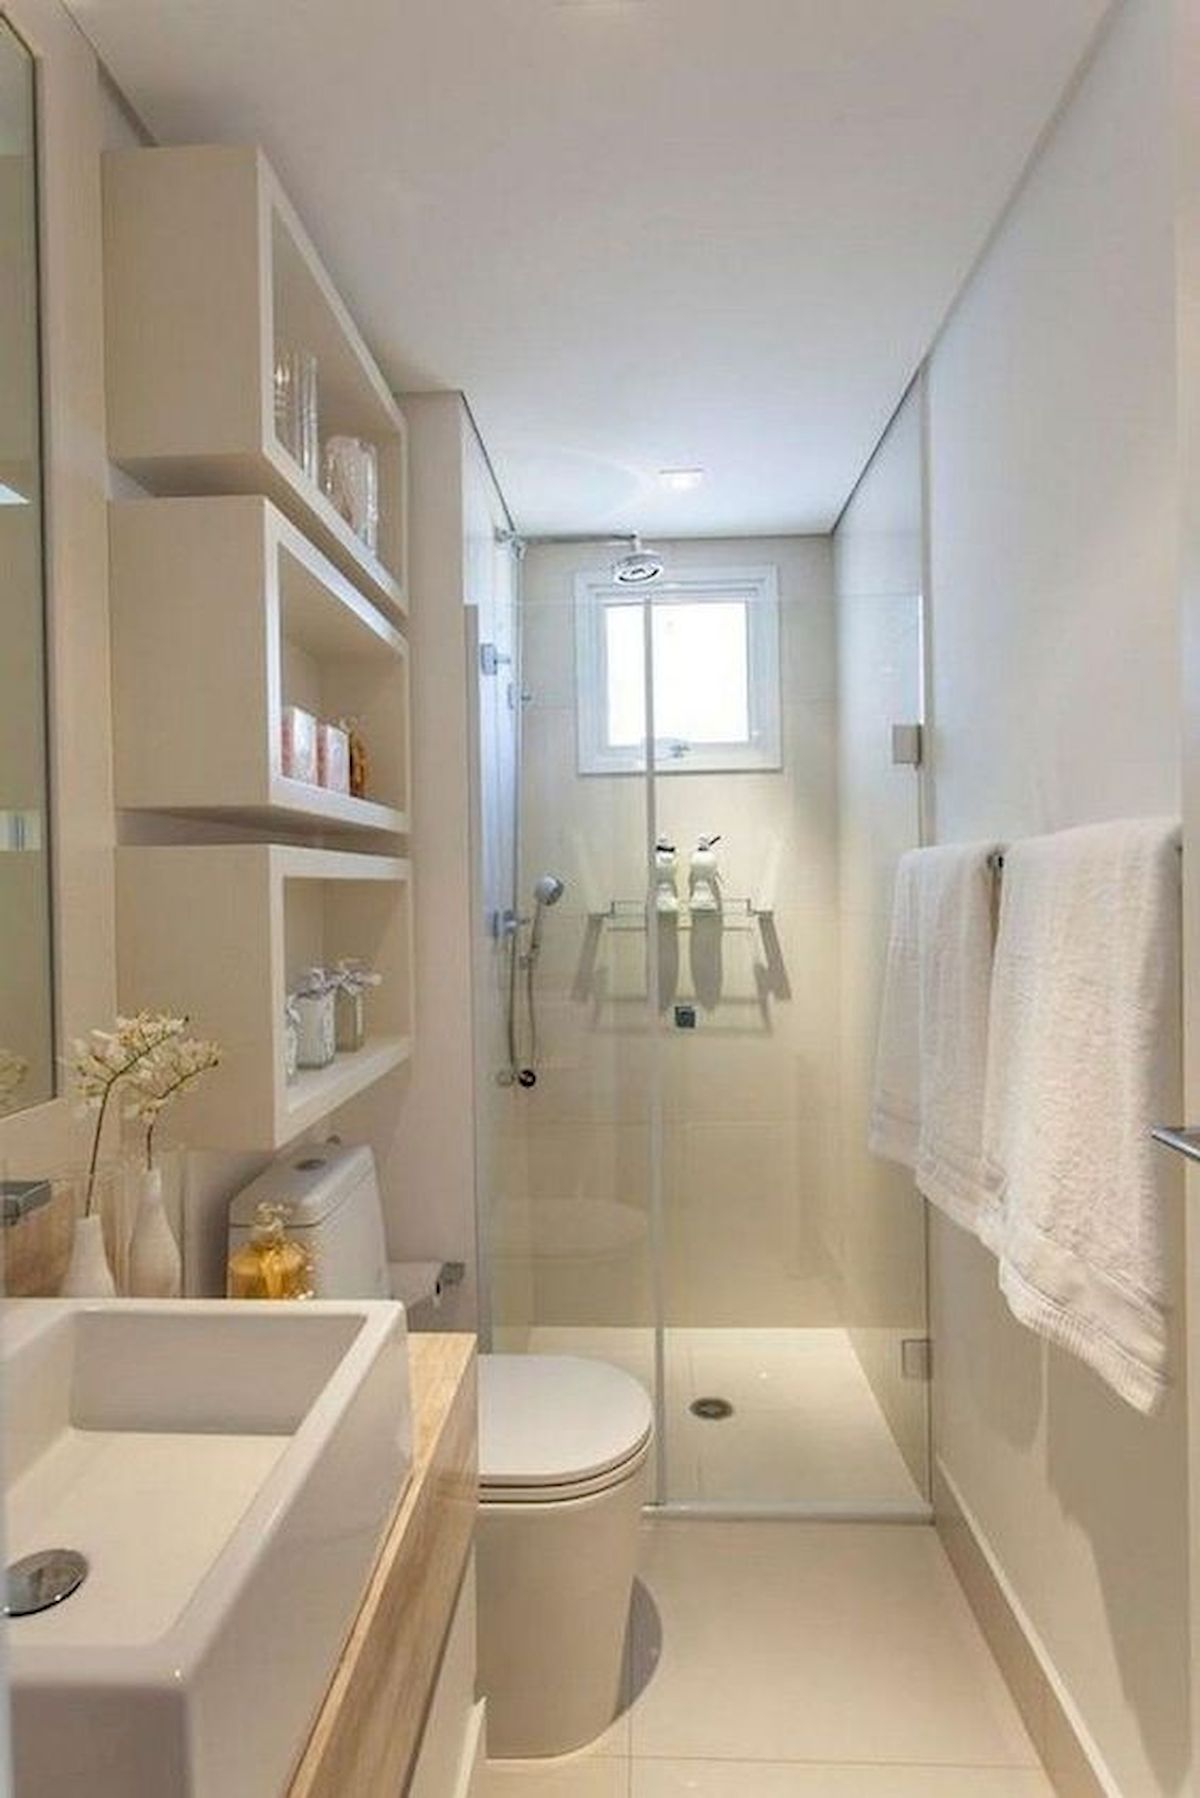 50 Best DIY Storage Design Ideas to Maximize Your Small Bathroom Space (35)